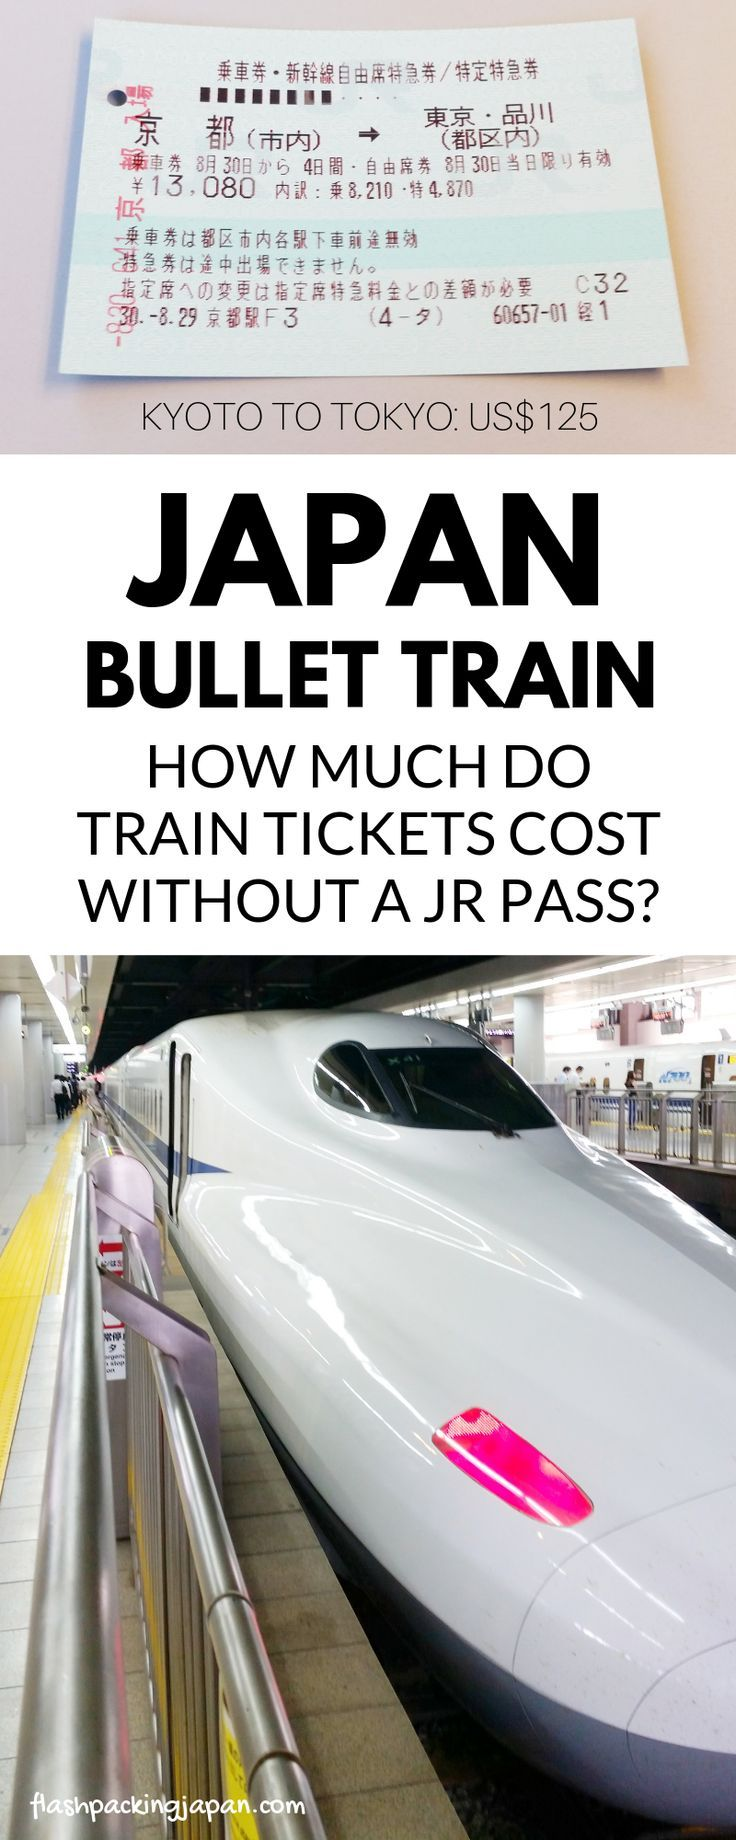 Does The Jr Pass Really Save Money On Japan Bullet Train Tickets Is It Worth It Flashpacking Japan Tren Estacionamiento Fotografia